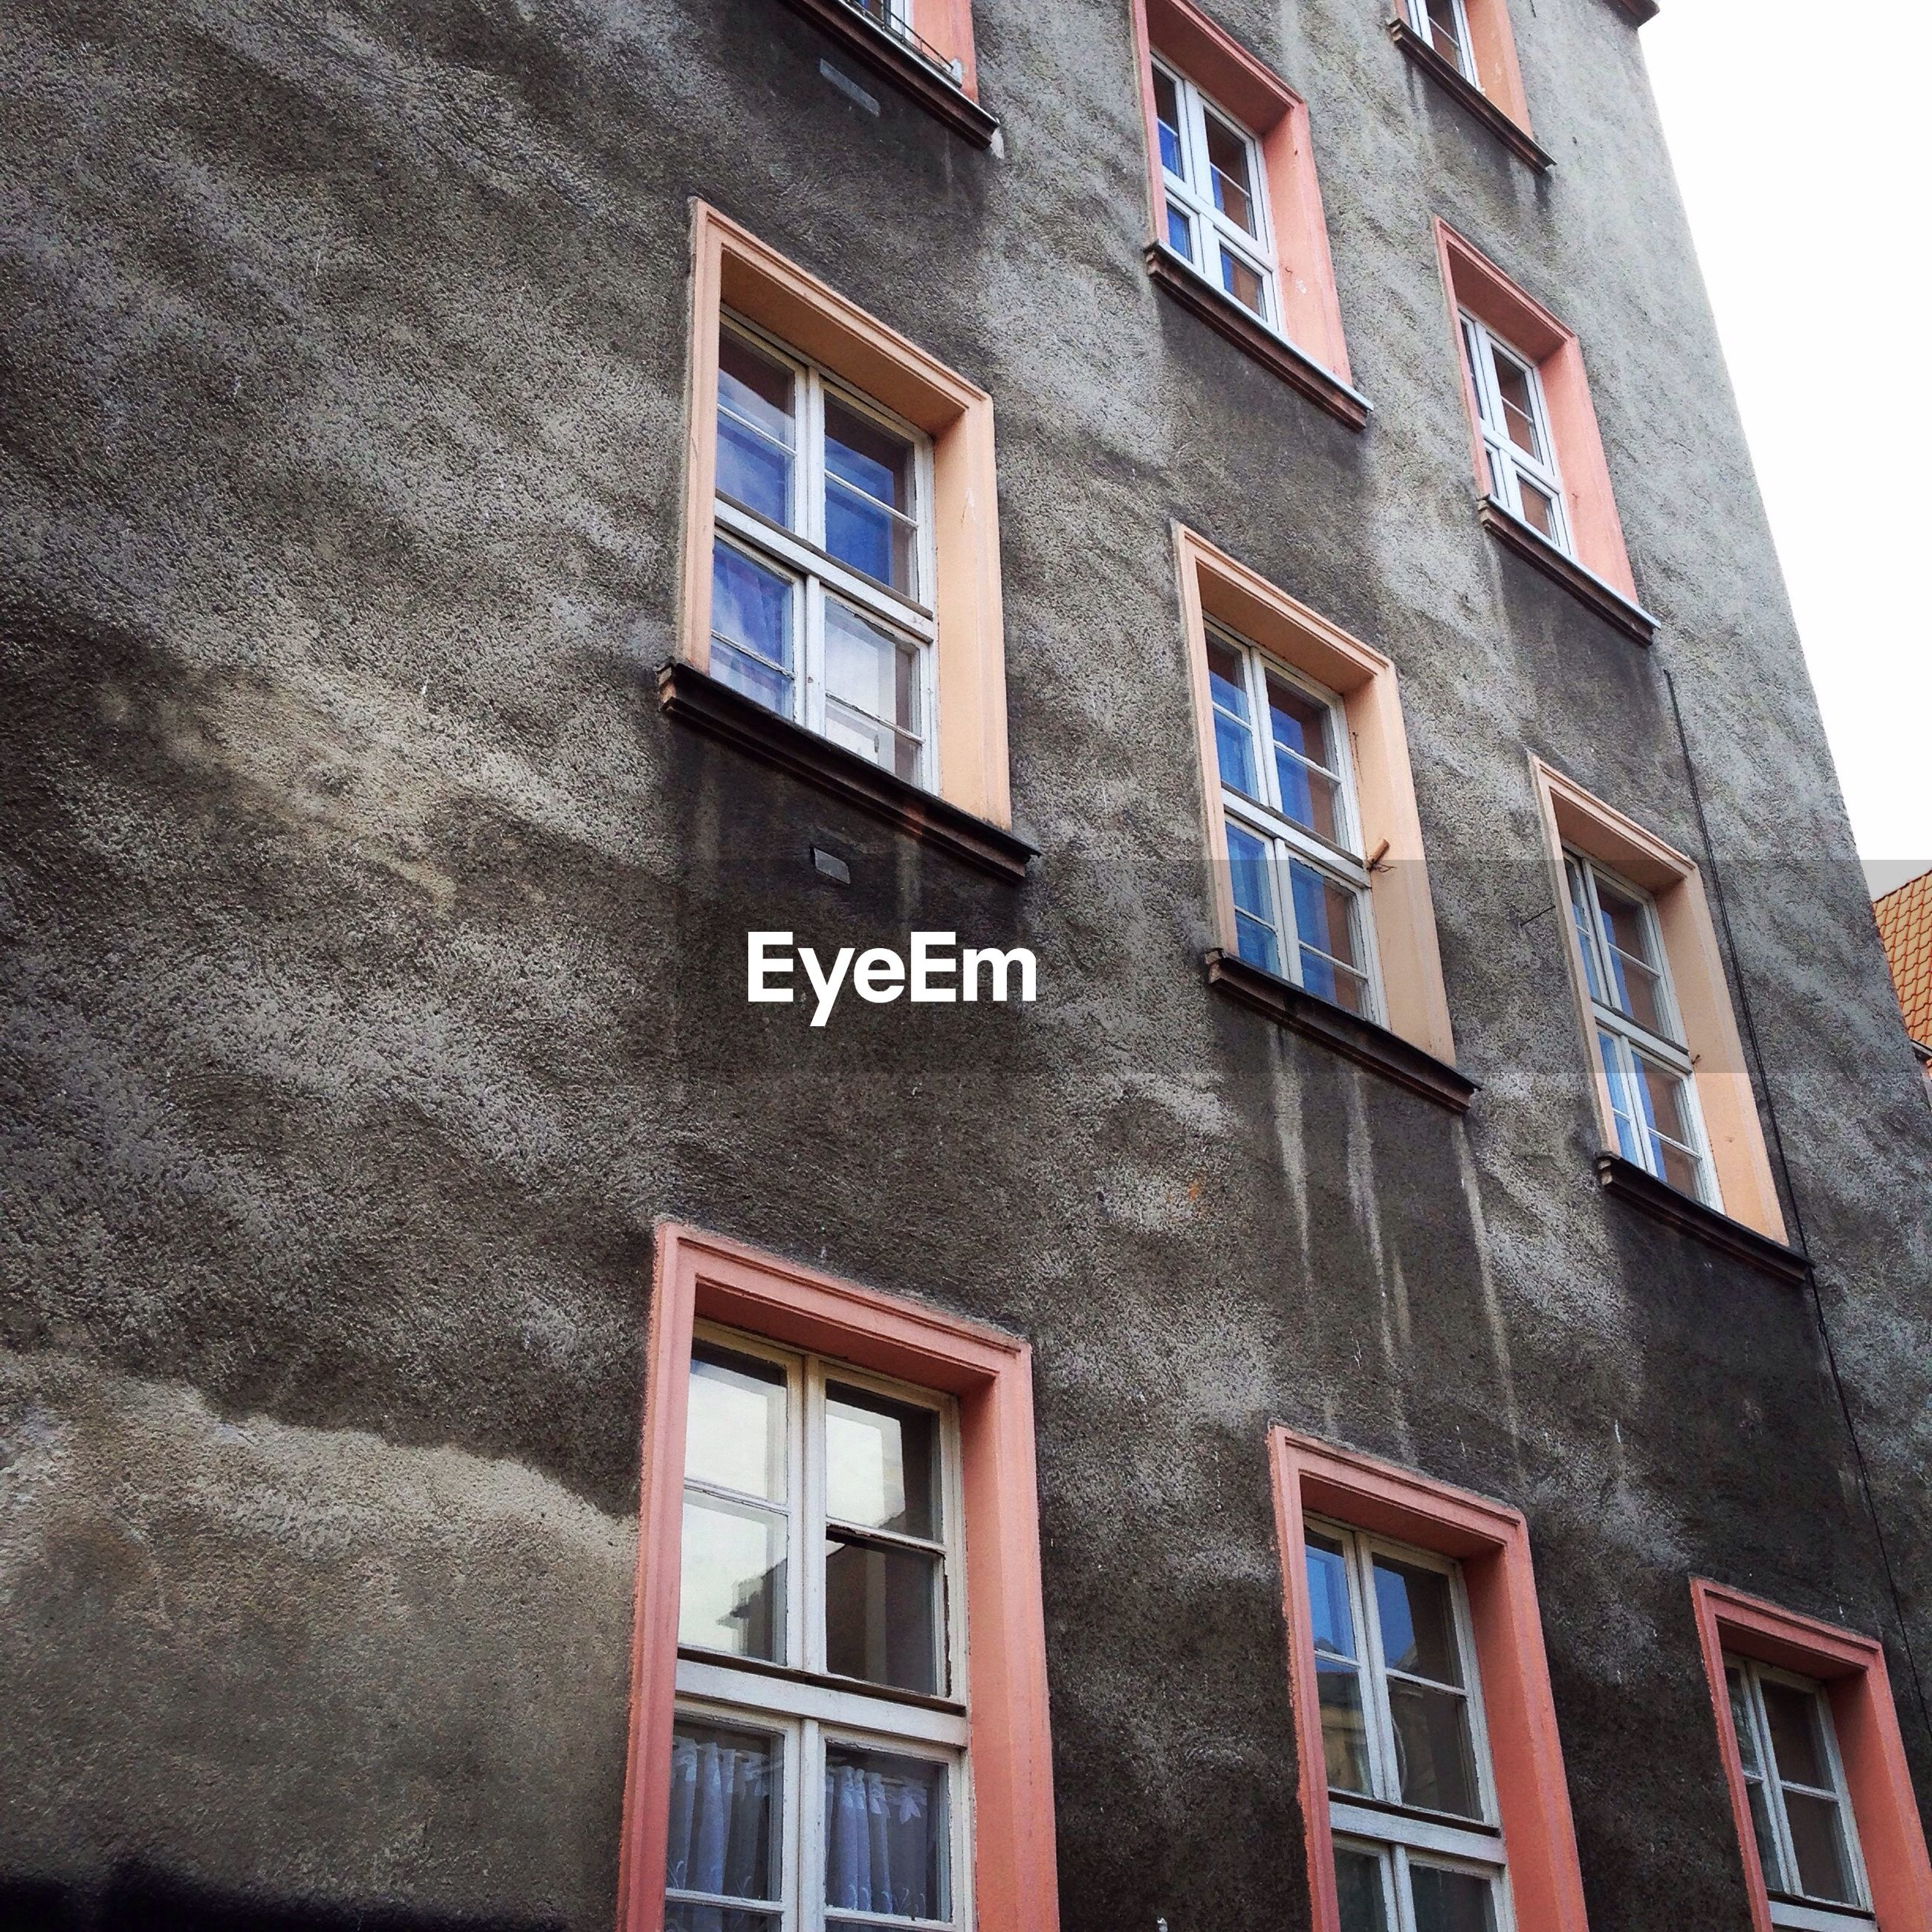 building exterior, window, architecture, built structure, low angle view, outdoors, no people, day